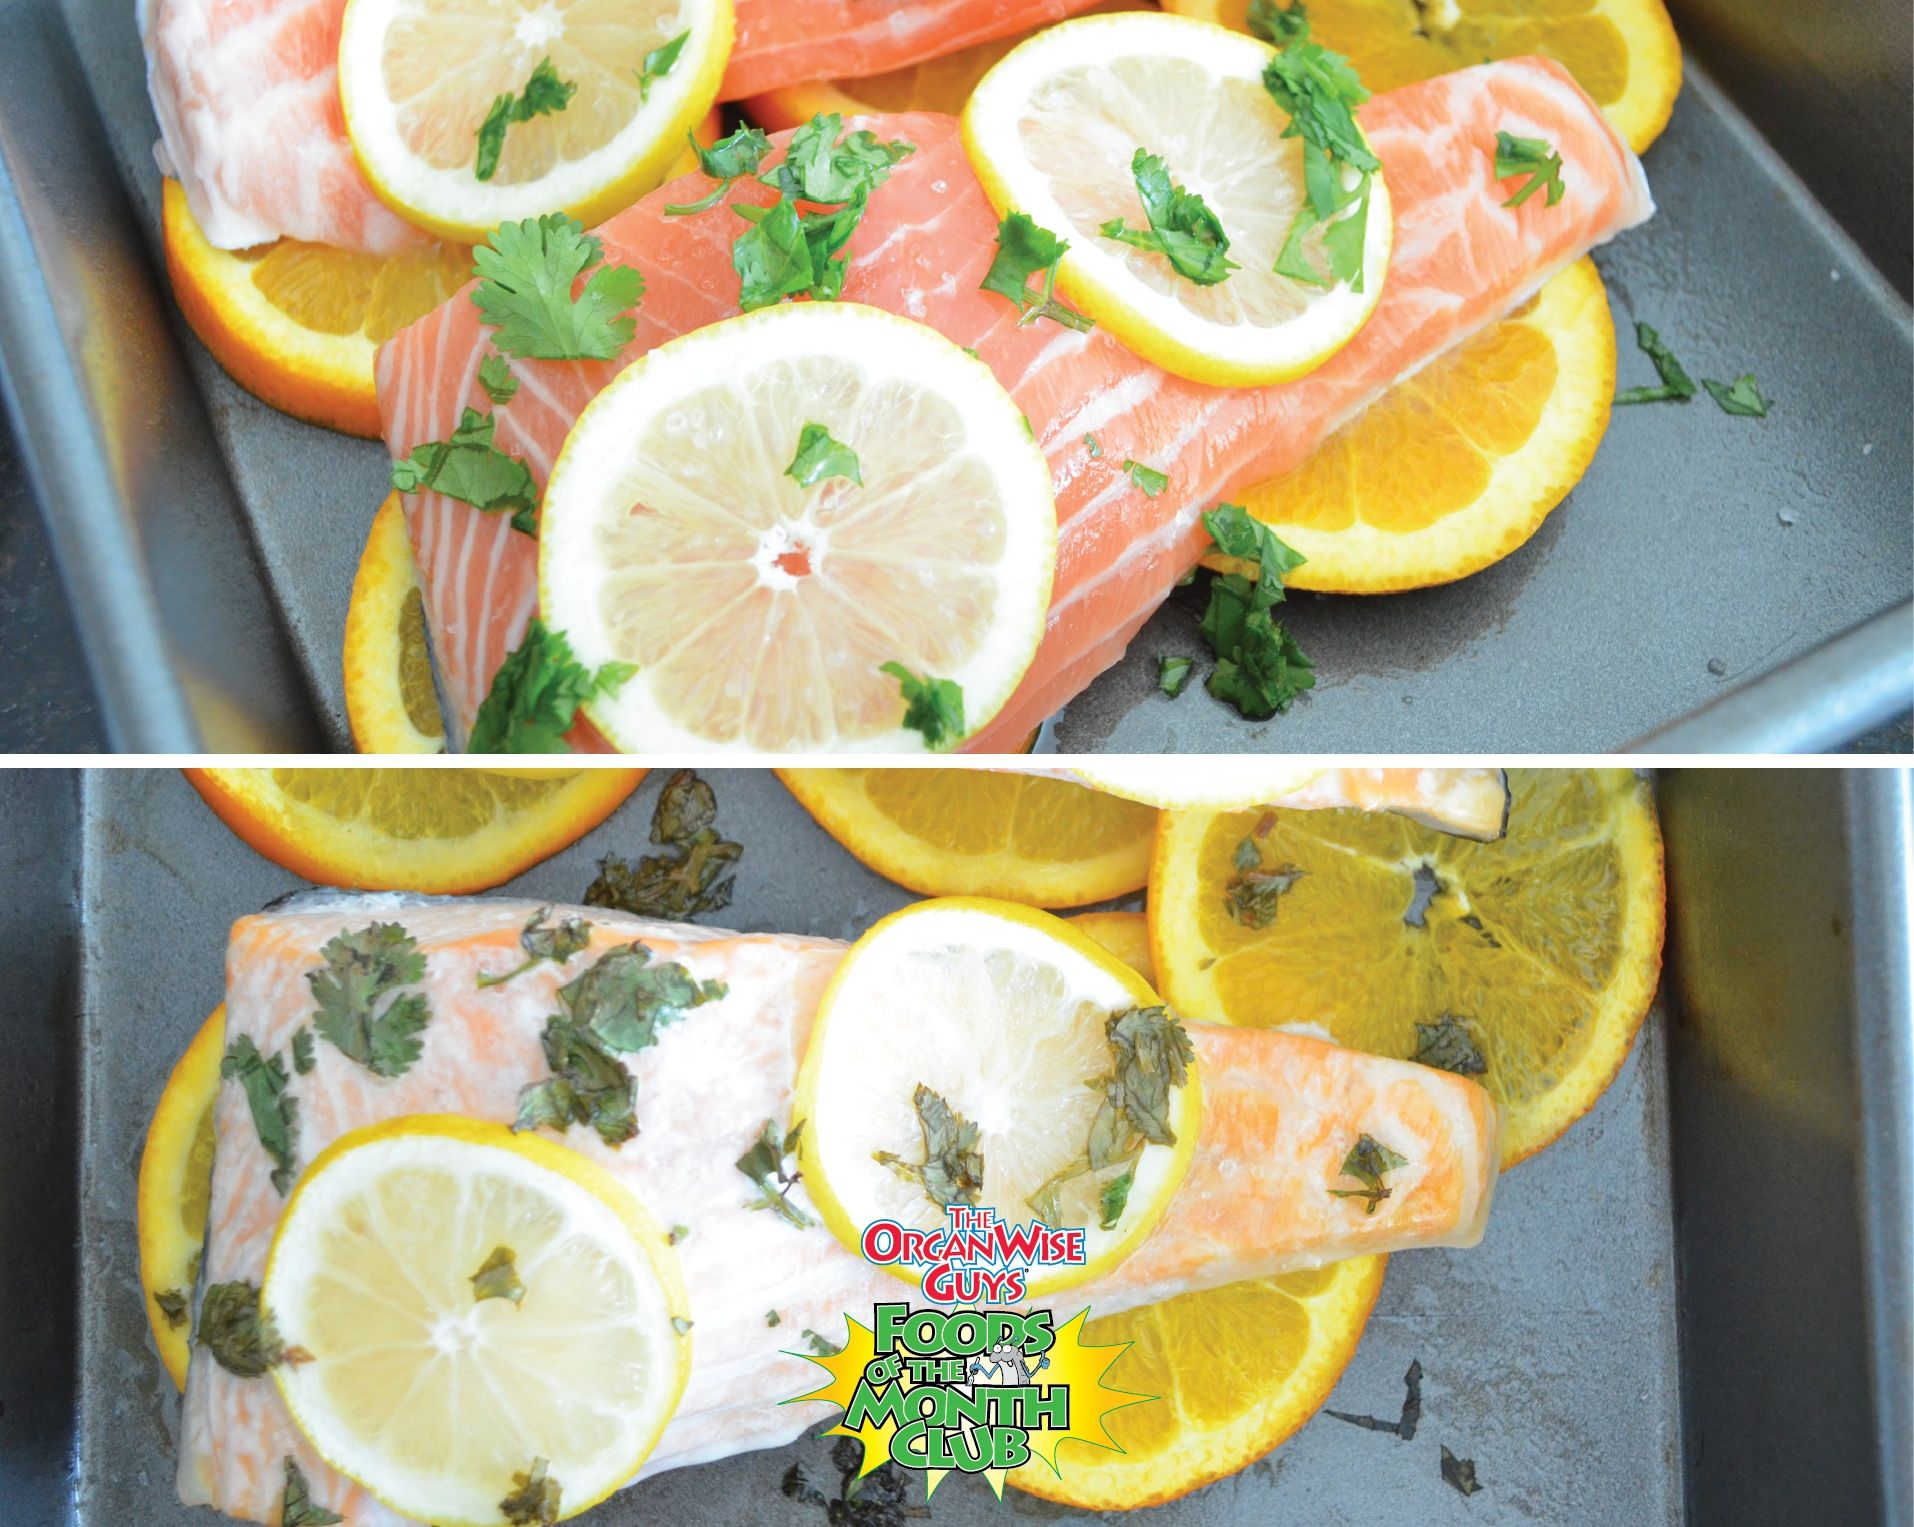 Three ideas for making citrus fish dishes. Create a healthy fish entree with citrus fruits like lemons and oranges with a variety of combinations. blog.organwiseguys.com/citrus/fish/